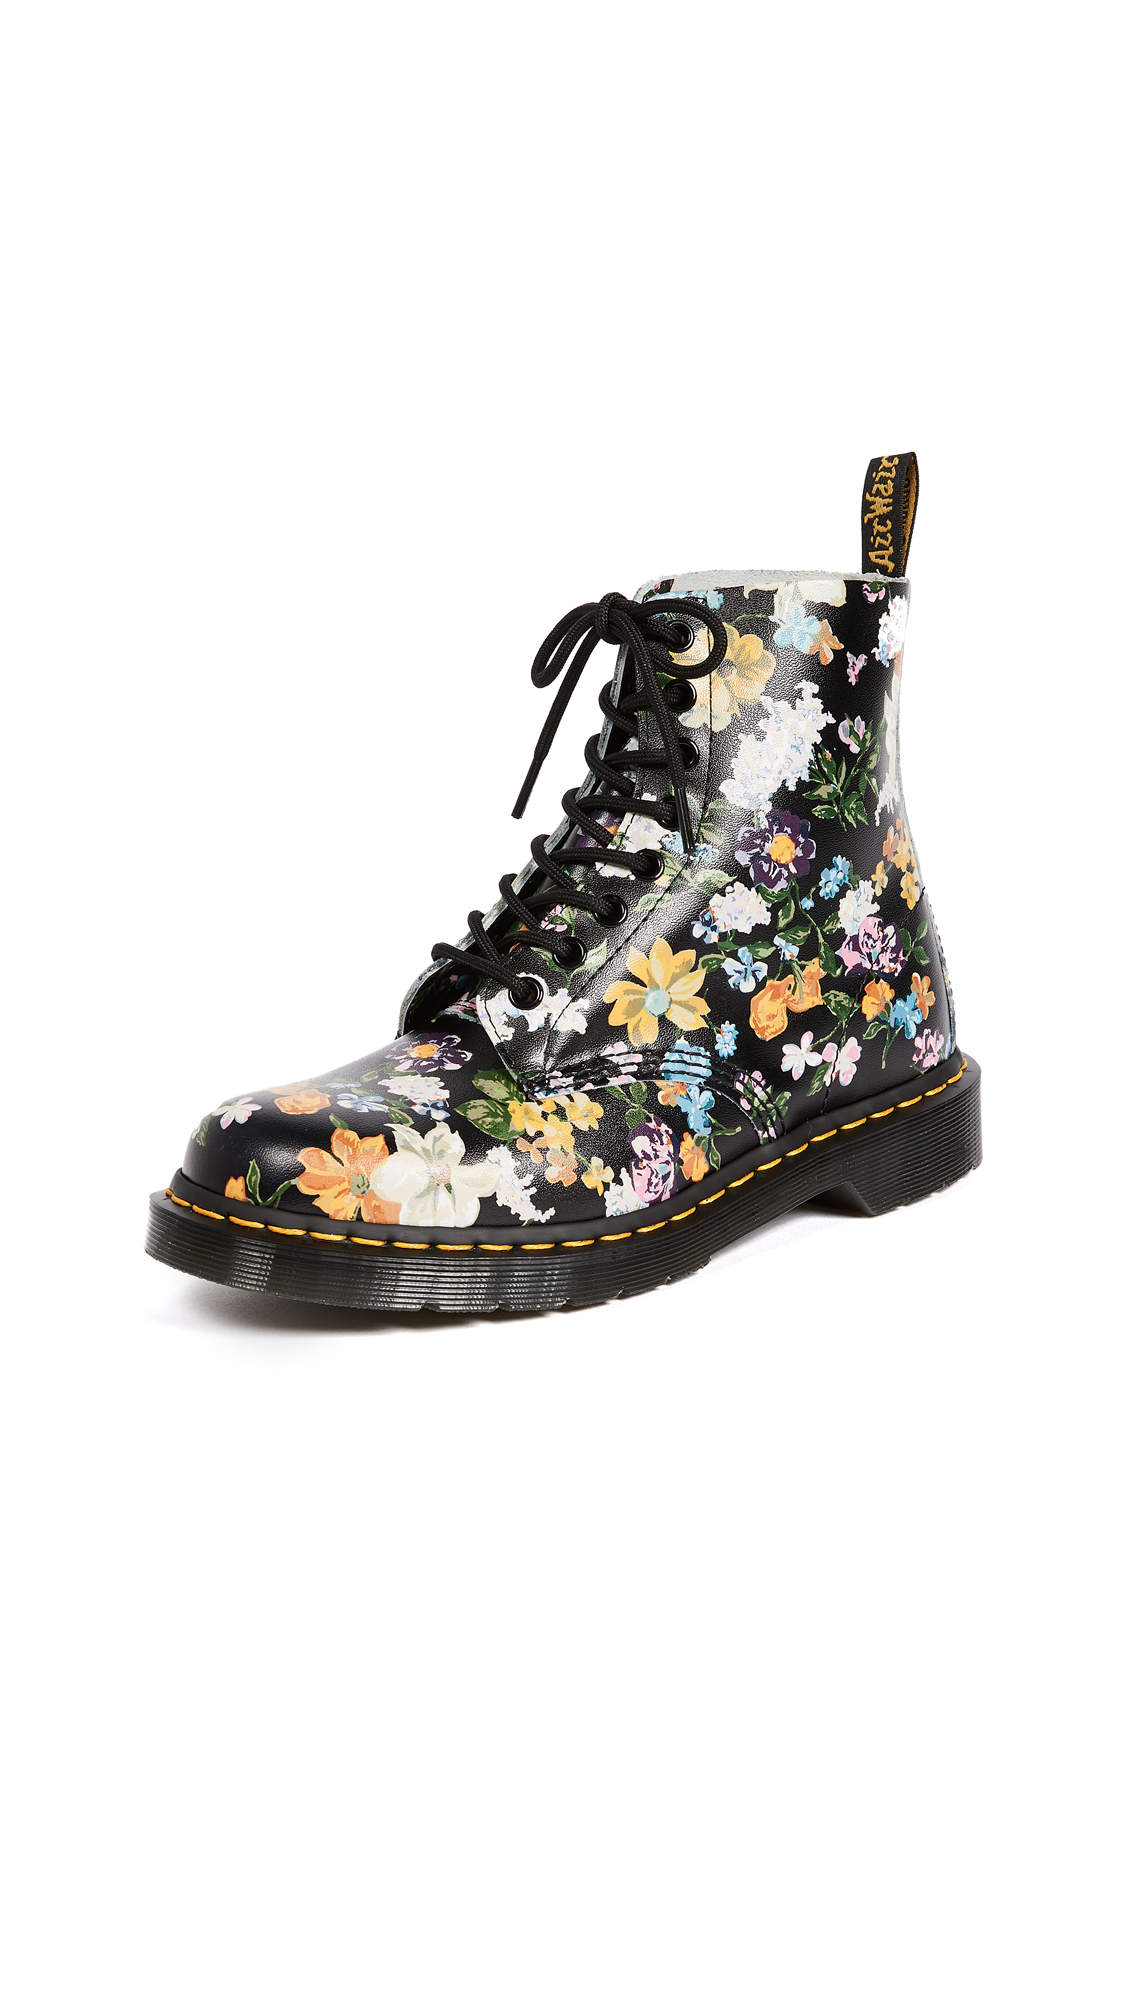 Dr. Martens Darcy Floral Pascal 8 Eye Boots - Black